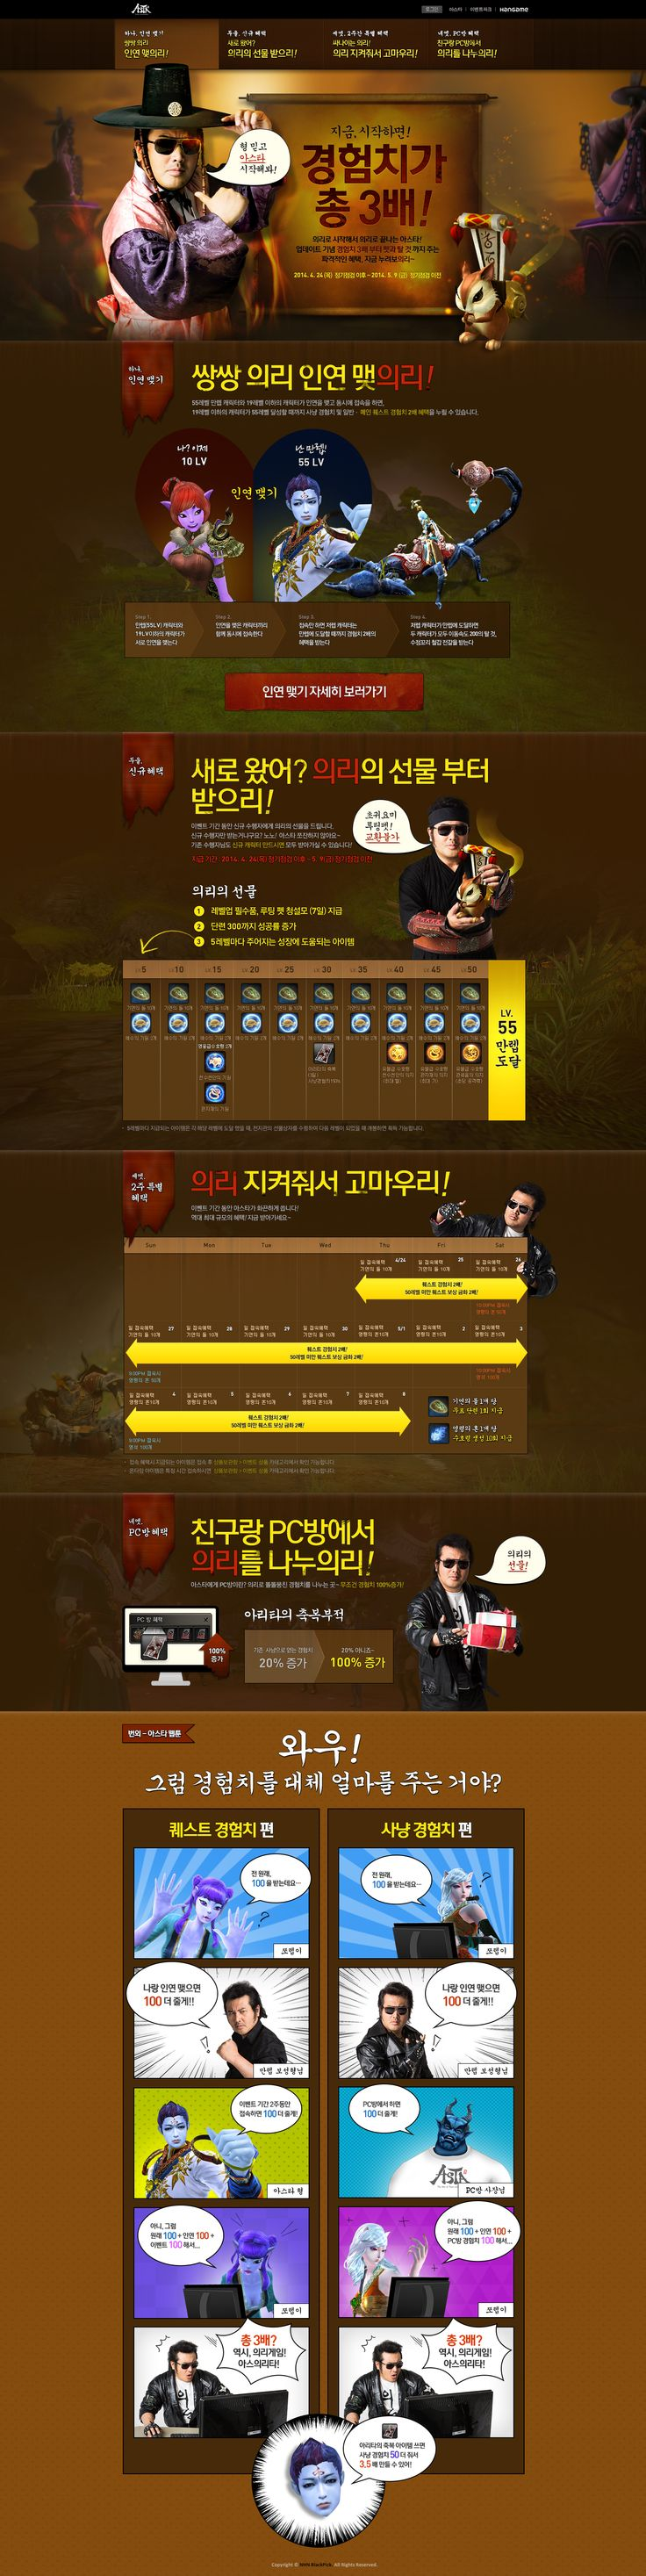 #game #web #design #korea